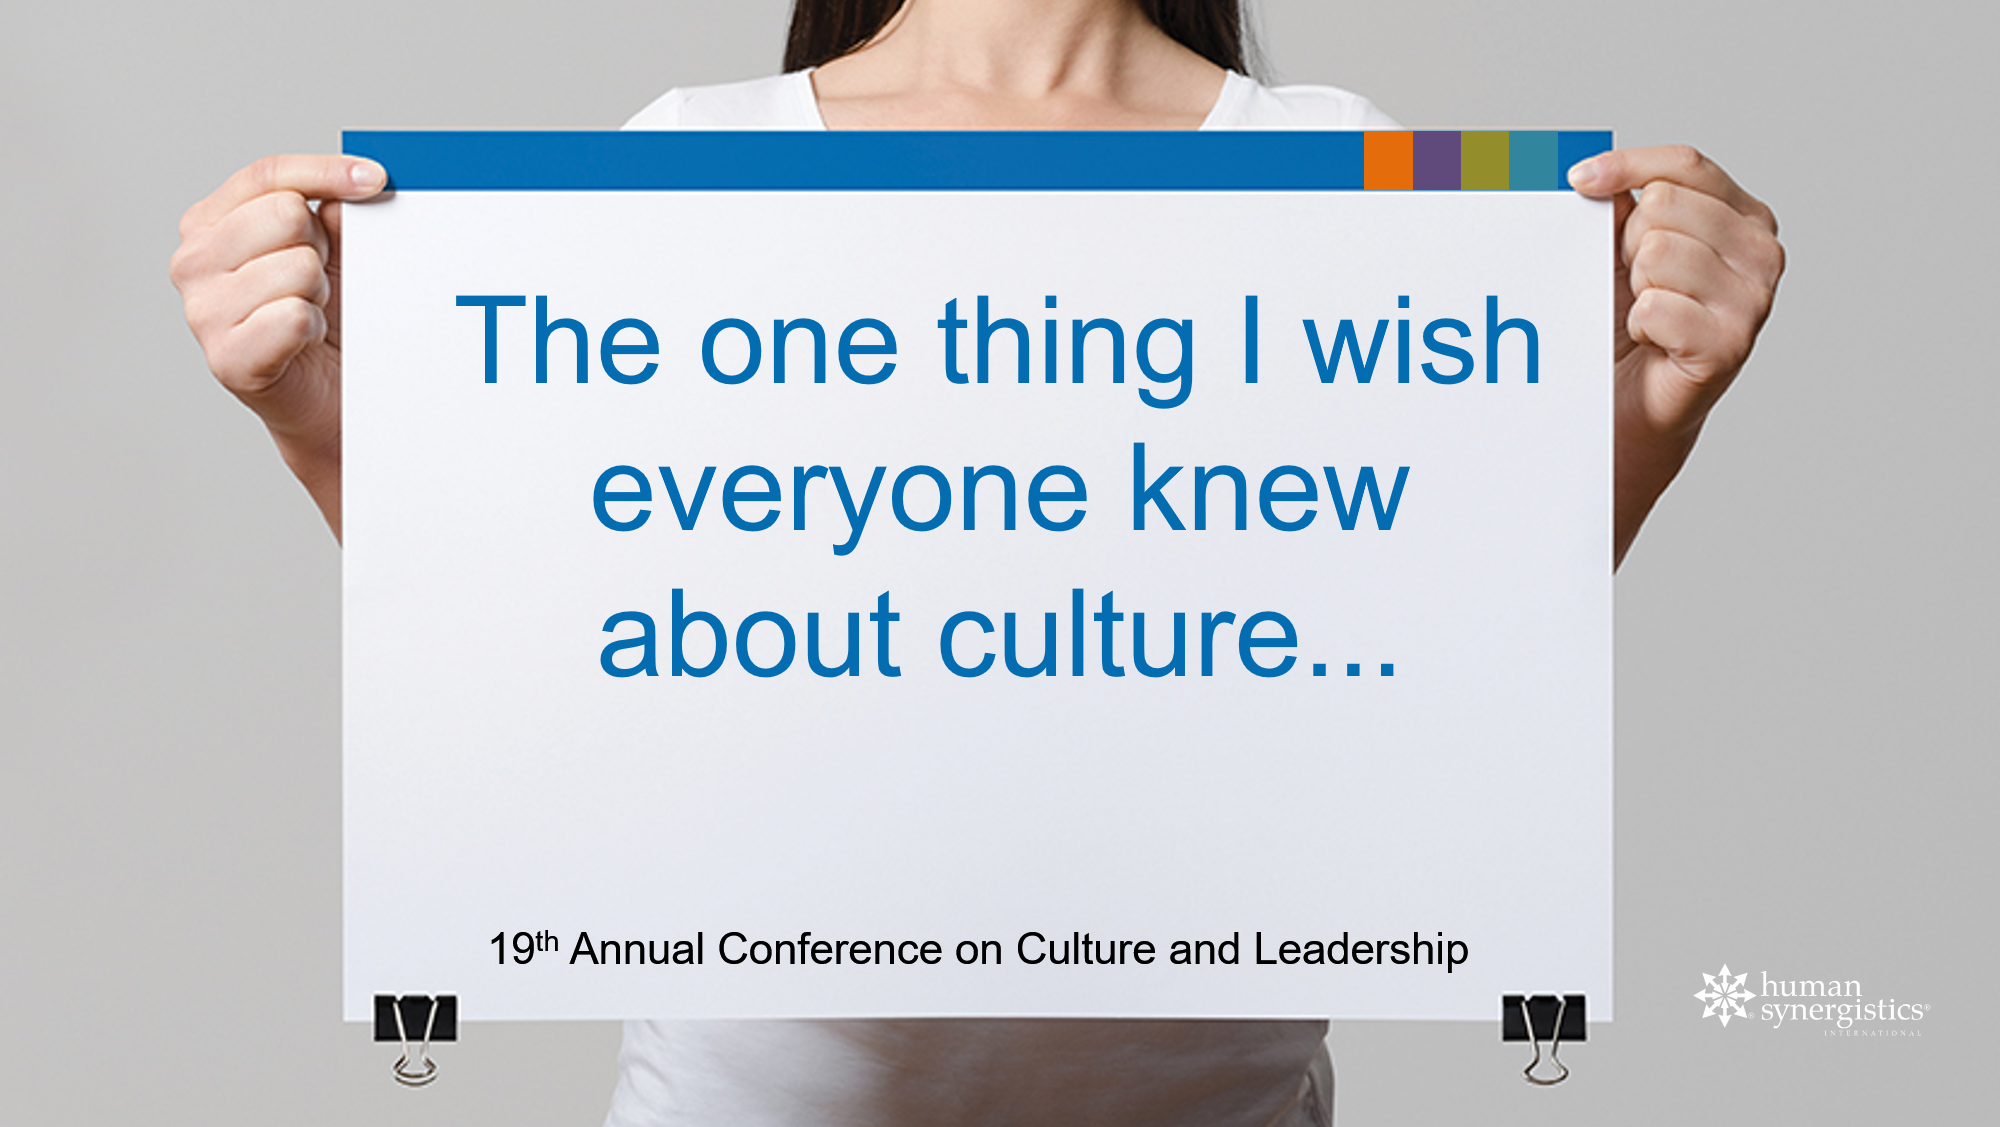 Australian Conferences on Culture and Leadership